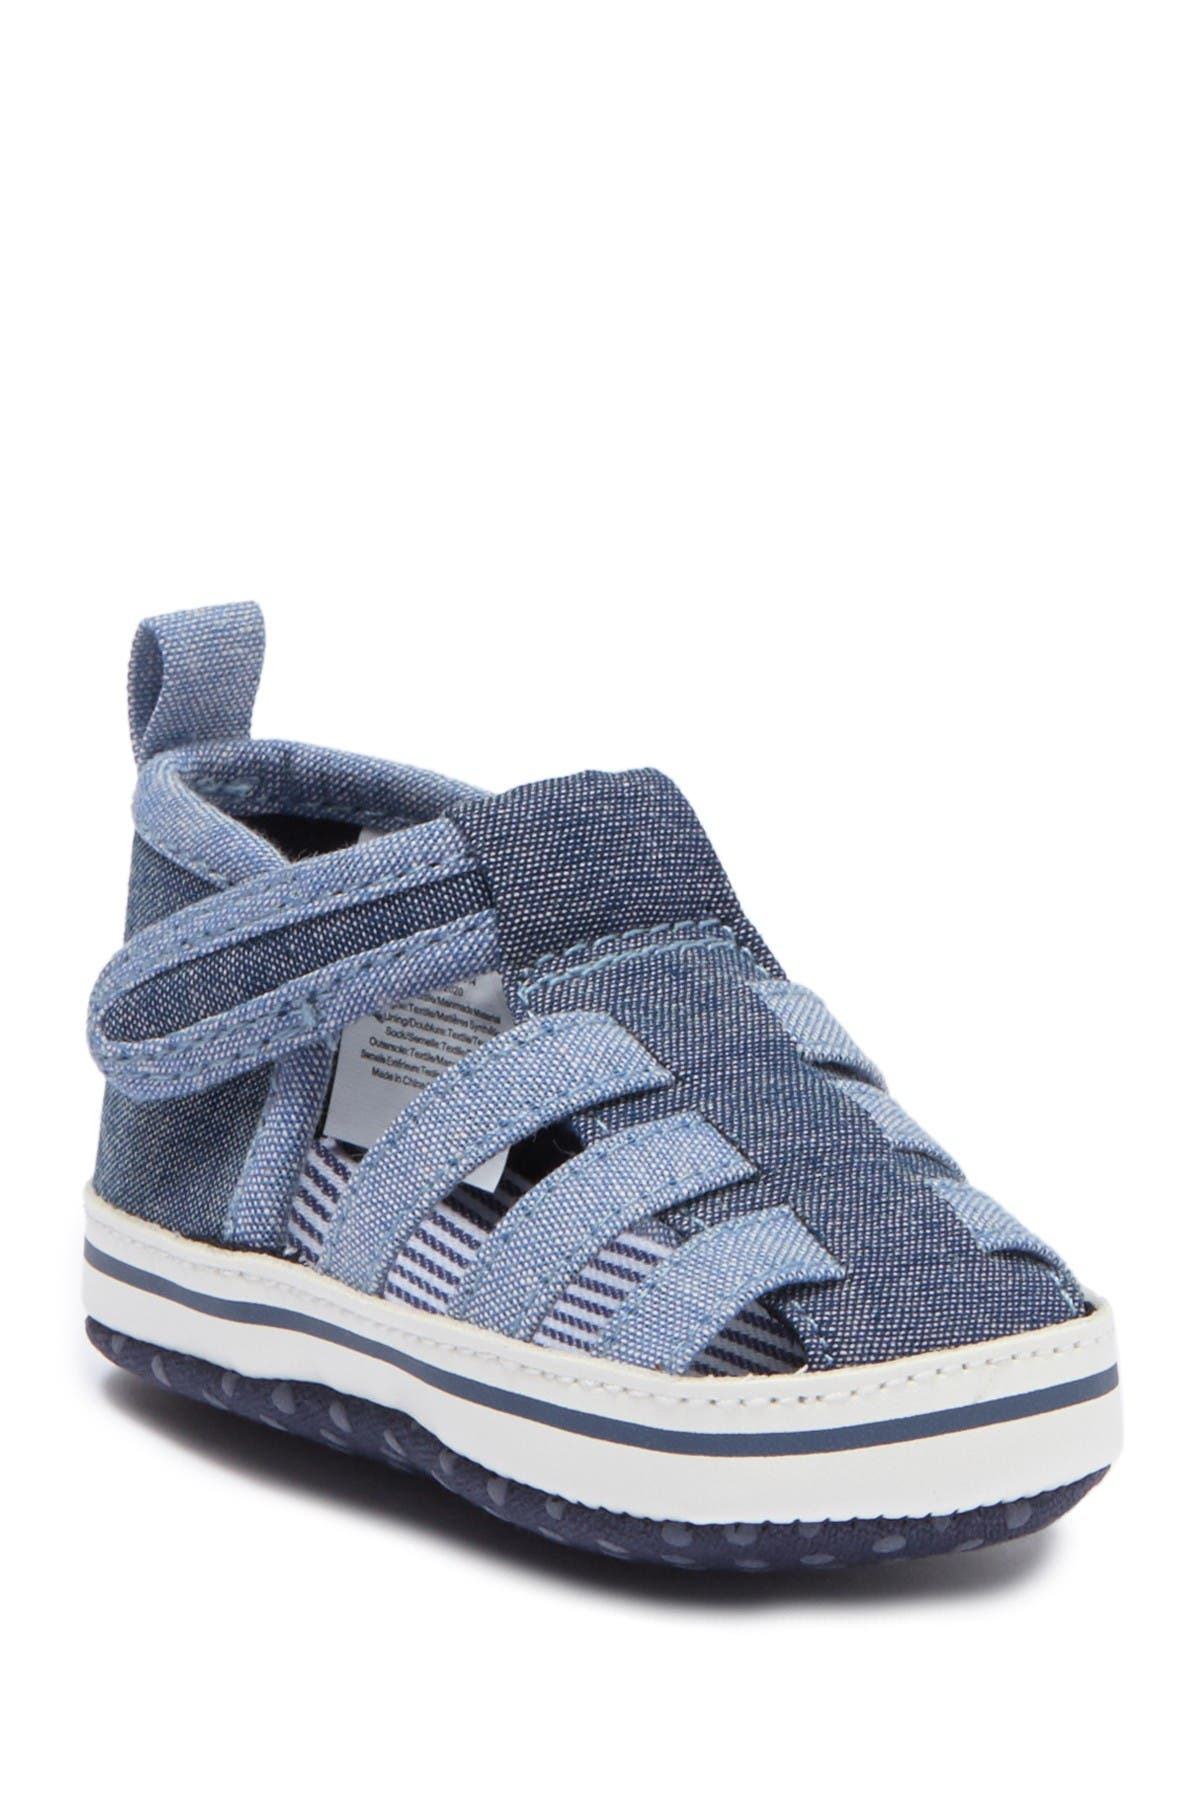 Image of Joe Fresh Klagemann Sandal